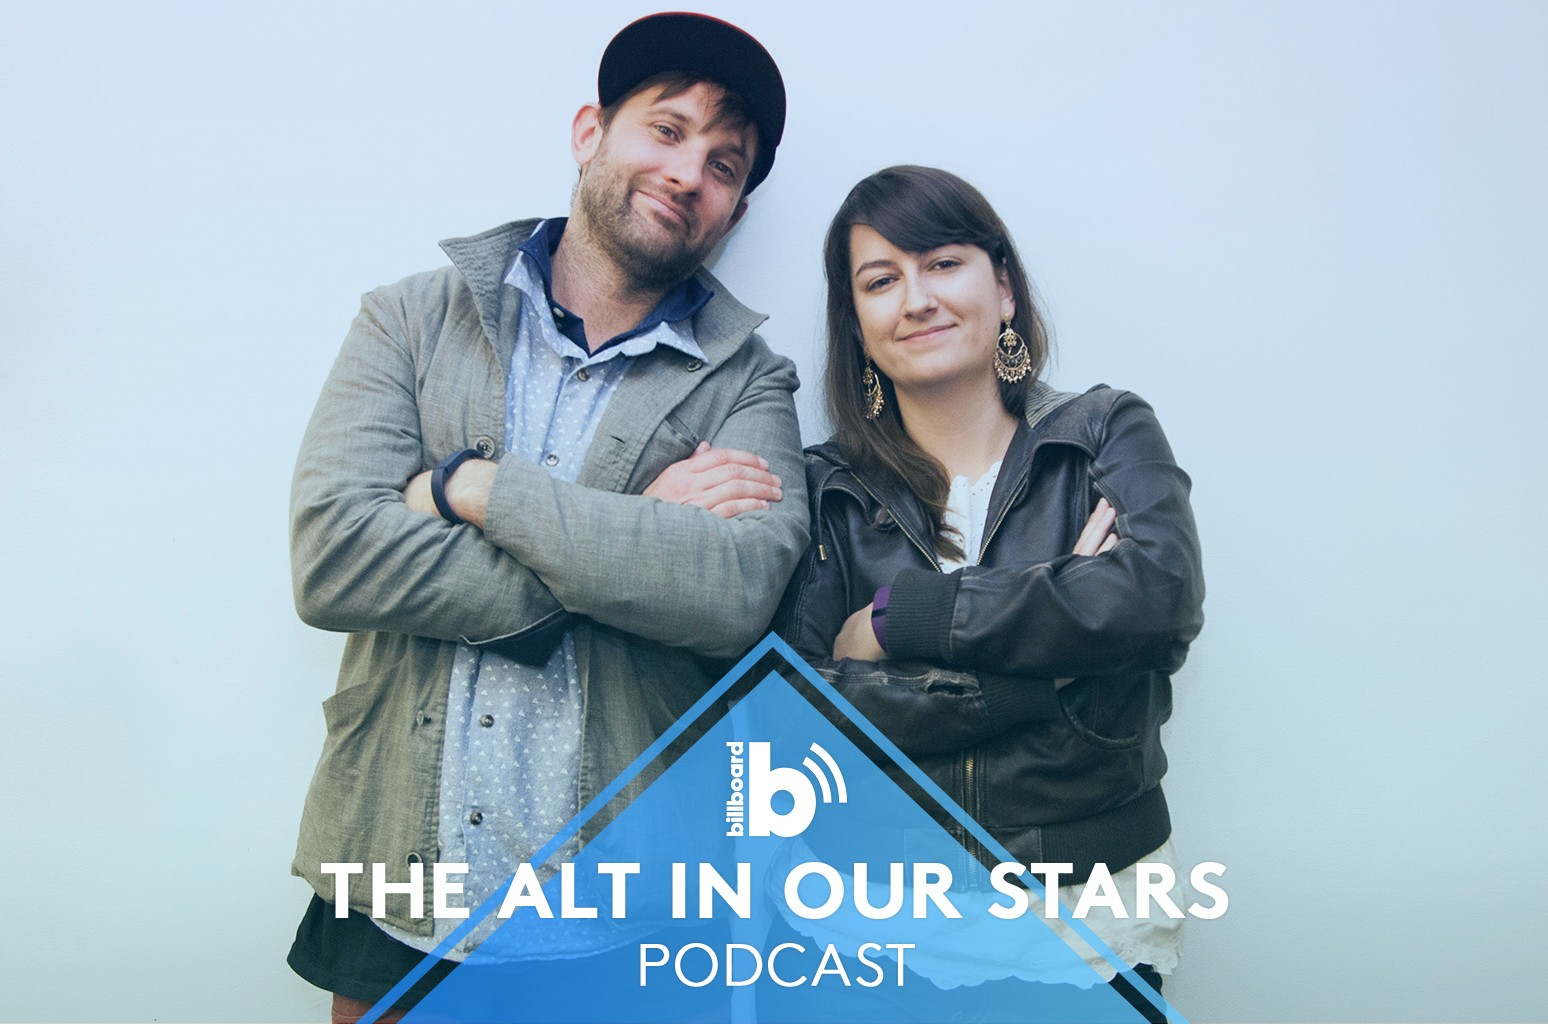 The Alt in Our Stars Podcast featuring: Strumbellas